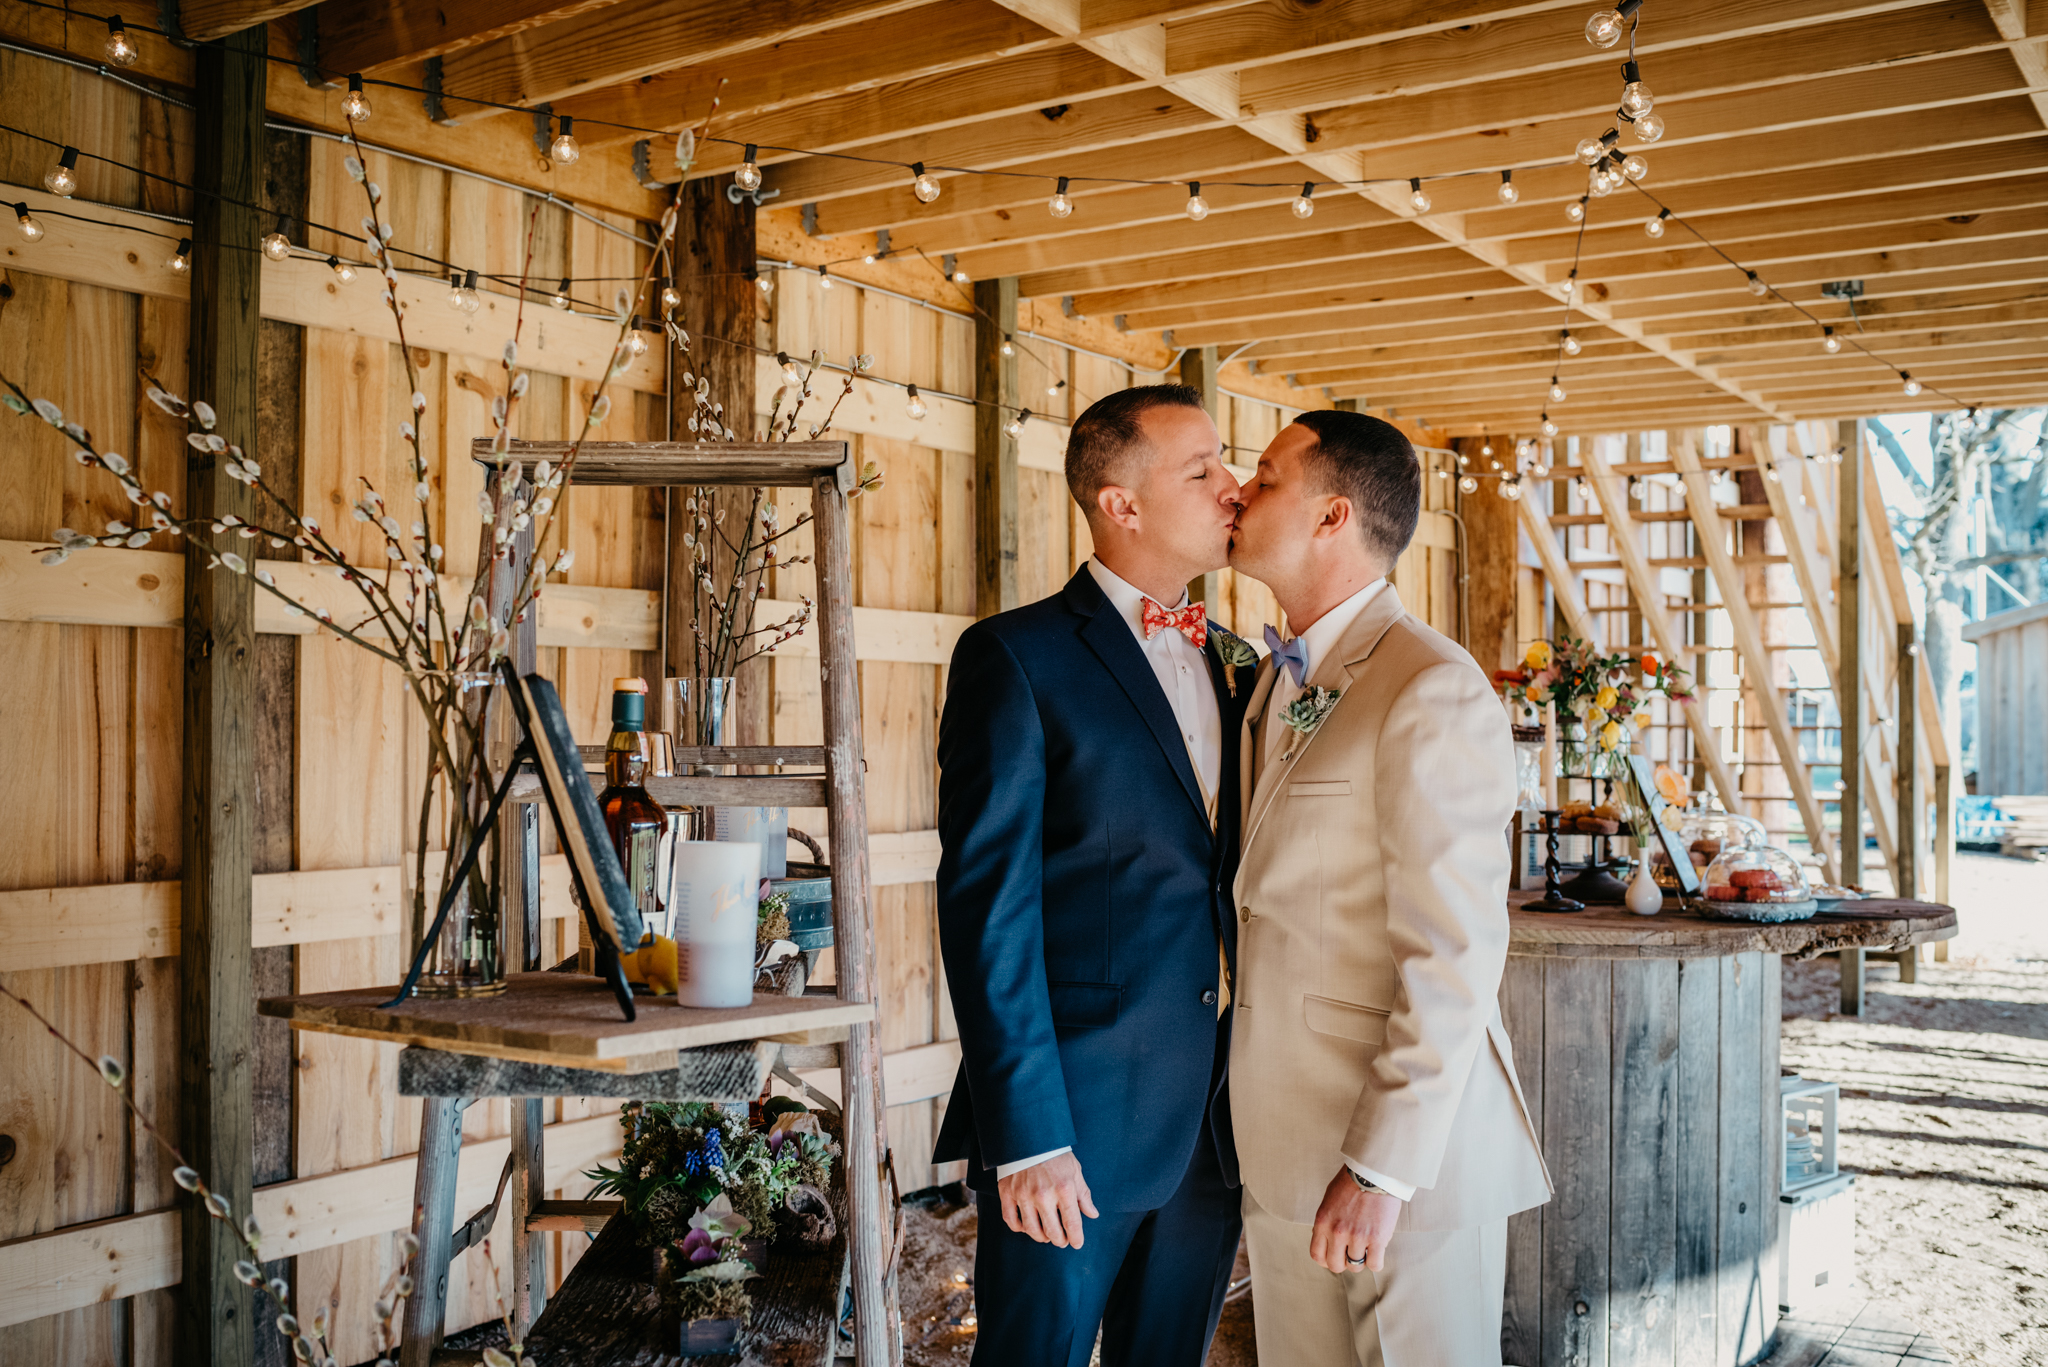 The grooms steal a kiss in the middle of the rustic farm reception decor during their styled engagement session with Rose Trail Images at Windy Hill Farm near Raleigh, NC.